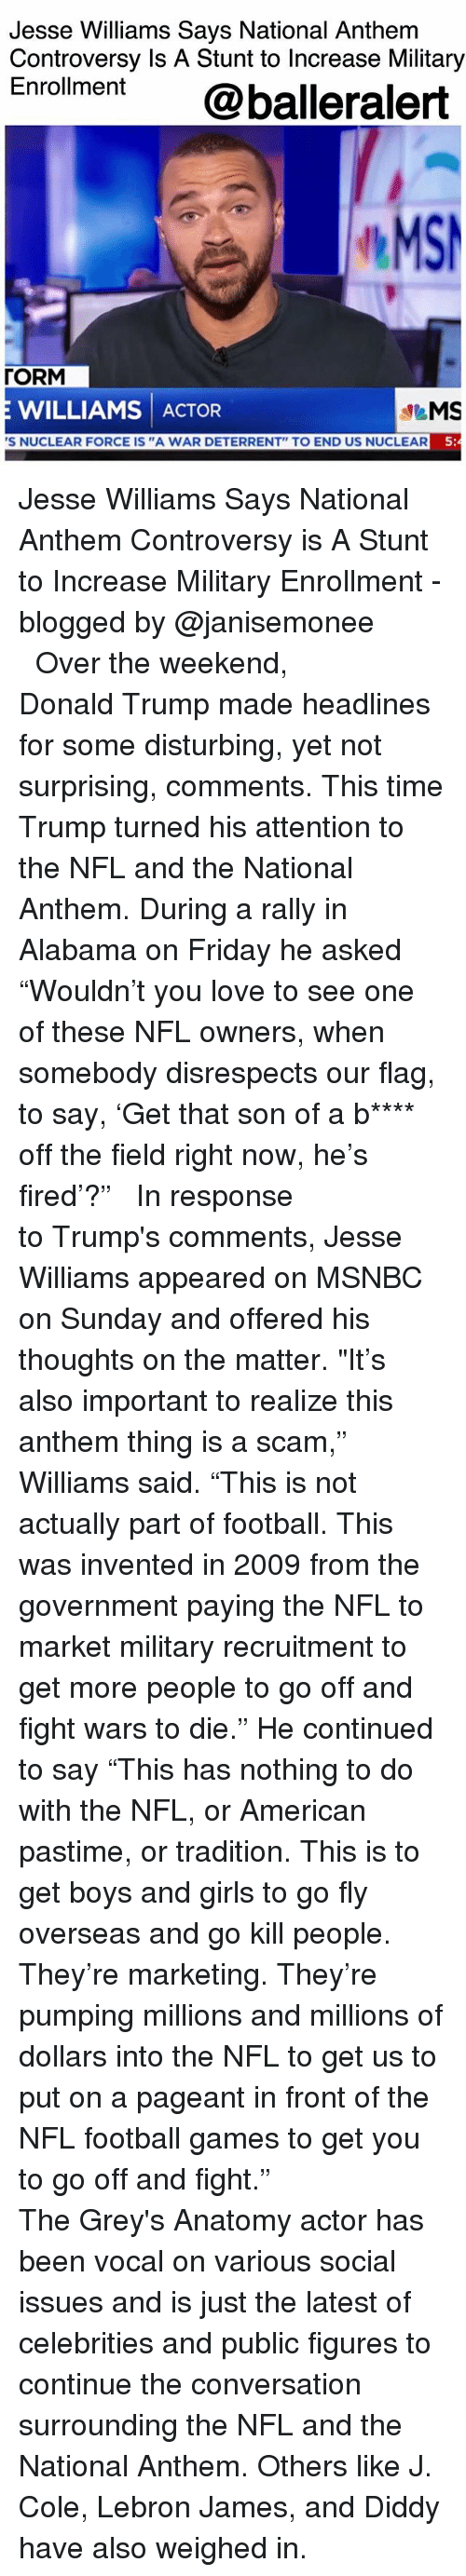 """Donald Trump, Football, and Friday: Jesse Williams Says National Anthem  Controversy Is A Stunt to Increase Military  Enroment @balleralert  MS  「ORM  E WILLIAMS ACTOR  S NUCLEAR FORCE IS """"A WAR DETERRENT"""" TO END US NUCLEAR  5 Jesse Williams Says National Anthem Controversy is A Stunt to Increase Military Enrollment - blogged by @janisemonee ⠀⠀⠀⠀⠀⠀⠀⠀⠀ ⠀⠀⠀⠀⠀⠀⠀⠀⠀ Over the weekend, Donald Trump made headlines for some disturbing, yet not surprising, comments. This time Trump turned his attention to the NFL and the National Anthem. During a rally in Alabama on Friday he asked """"Wouldn't you love to see one of these NFL owners, when somebody disrespects our flag, to say, 'Get that son of a b**** off the field right now, he's fired'?"""" ⠀⠀⠀⠀⠀⠀⠀⠀⠀ ⠀⠀⠀⠀⠀⠀⠀⠀⠀ In response to Trump's comments, Jesse Williams appeared on MSNBC on Sunday and offered his thoughts on the matter. """"It's also important to realize this anthem thing is a scam,"""" Williams said. """"This is not actually part of football. This was invented in 2009 from the government paying the NFL to market military recruitment to get more people to go off and fight wars to die."""" He continued to say """"This has nothing to do with the NFL, or American pastime, or tradition. This is to get boys and girls to go fly overseas and go kill people. They're marketing. They're pumping millions and millions of dollars into the NFL to get us to put on a pageant in front of the NFL football games to get you to go off and fight."""" ⠀⠀⠀⠀⠀⠀⠀⠀⠀ ⠀⠀⠀⠀⠀⠀⠀⠀⠀ The Grey's Anatomy actor has been vocal on various social issues and is just the latest of celebrities and public figures to continue the conversation surrounding the NFL and the National Anthem. Others like J. Cole, Lebron James, and Diddy have also weighed in."""